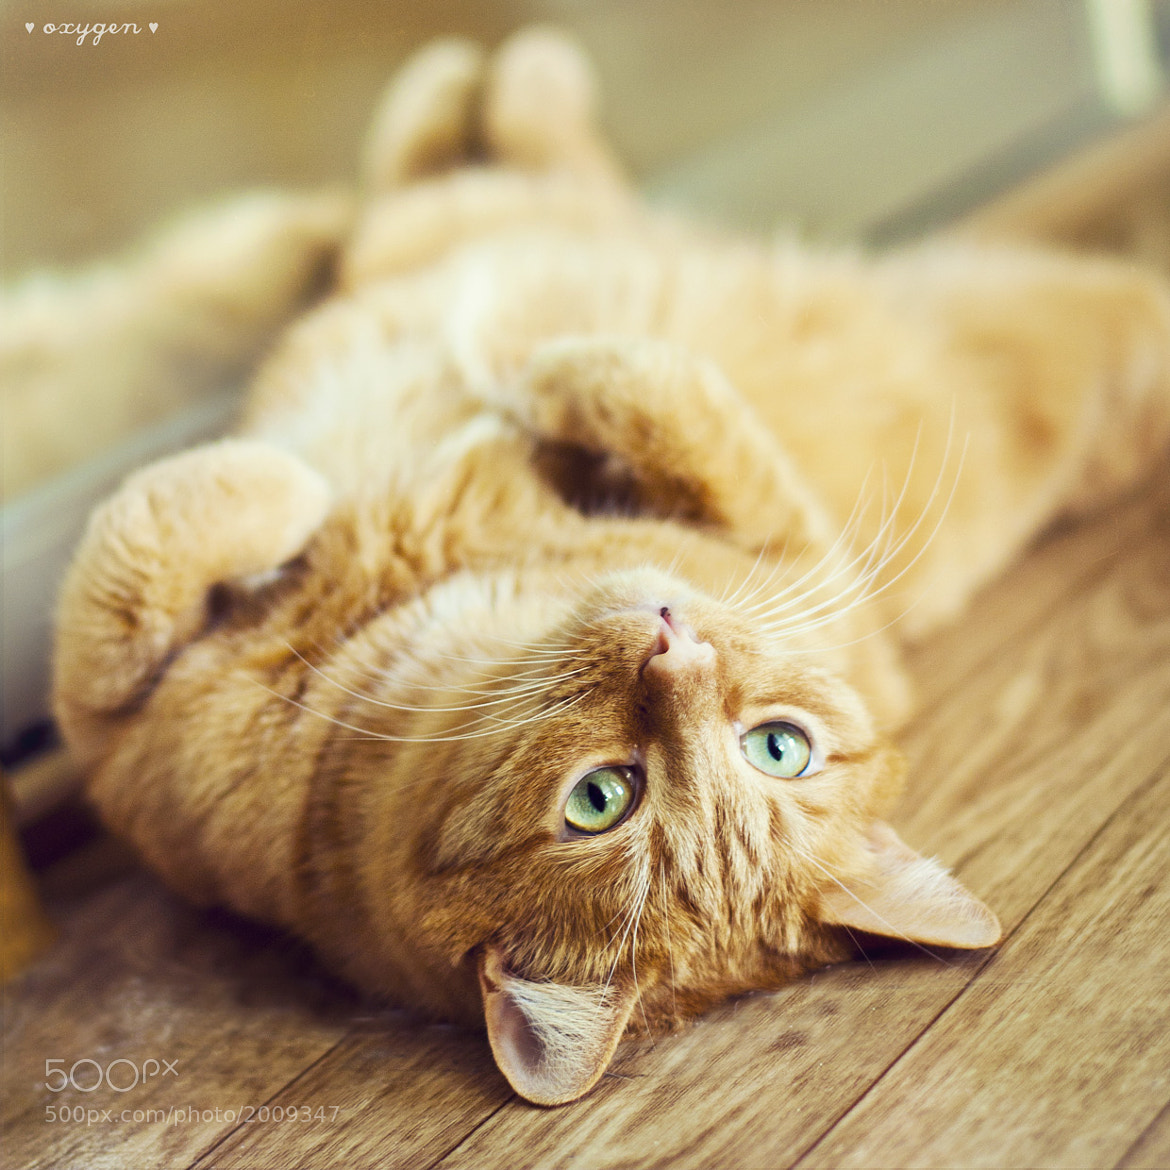 Photograph relax by Oksana Ariskina on 500px